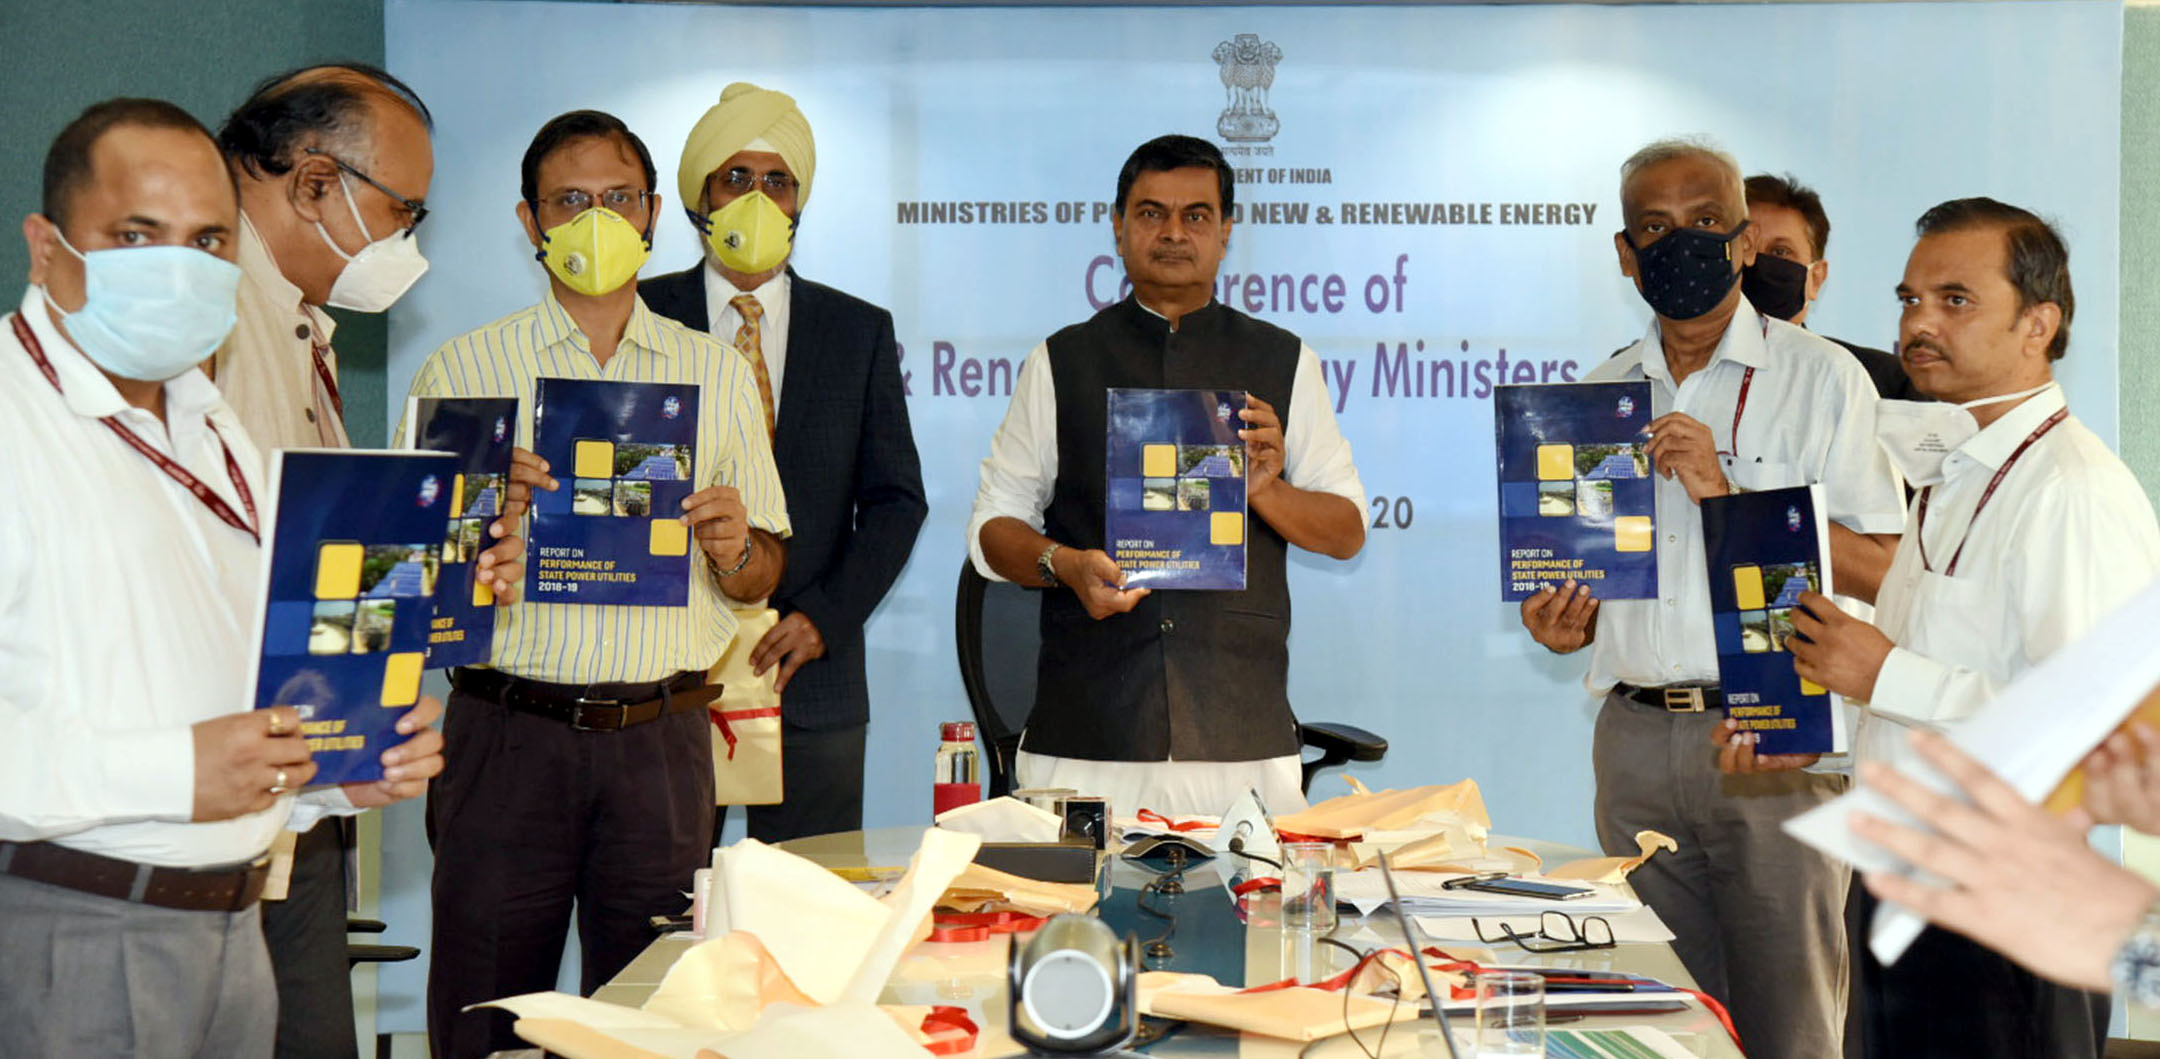 The Minister of State for Power, New & Renewable Energy (Independent Charge) and Skill Development & Entrepreneurship, Shri Raj Kumar Singh releasing a publication at a Conference of Power and New & Renewable Energy Ministers of States & UTs, through Video Conferencing, in New Delhi on July 03, 2020. The Secretary, Ministry of Power, Shri Sanjeev Nandan Sahai is also seen.